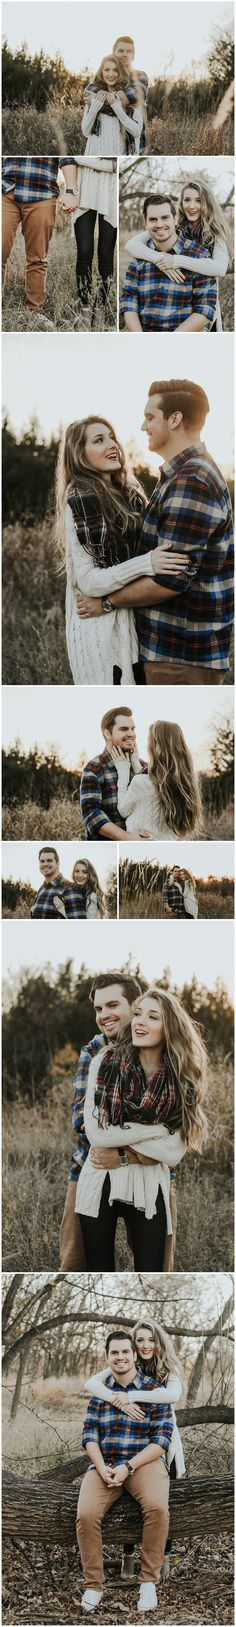 Fall Engagement Session | Oklahoma City Photographer | Loves + Letters